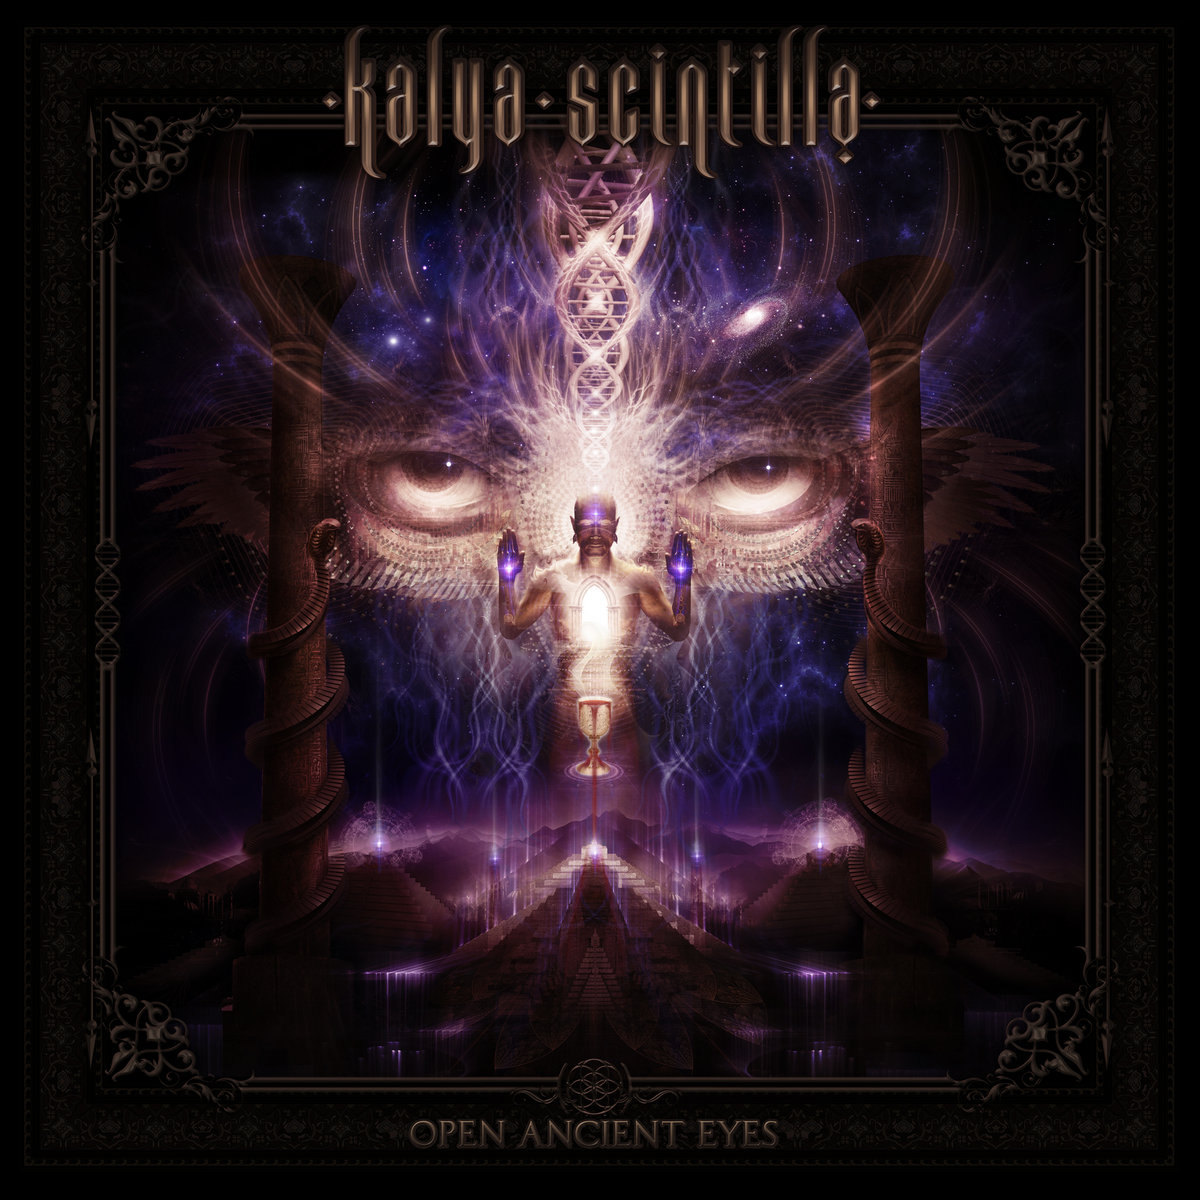 Kalya Scintilla - Enter the Temple @ 'Open Ancient Eyes' album (432hz, electronic)